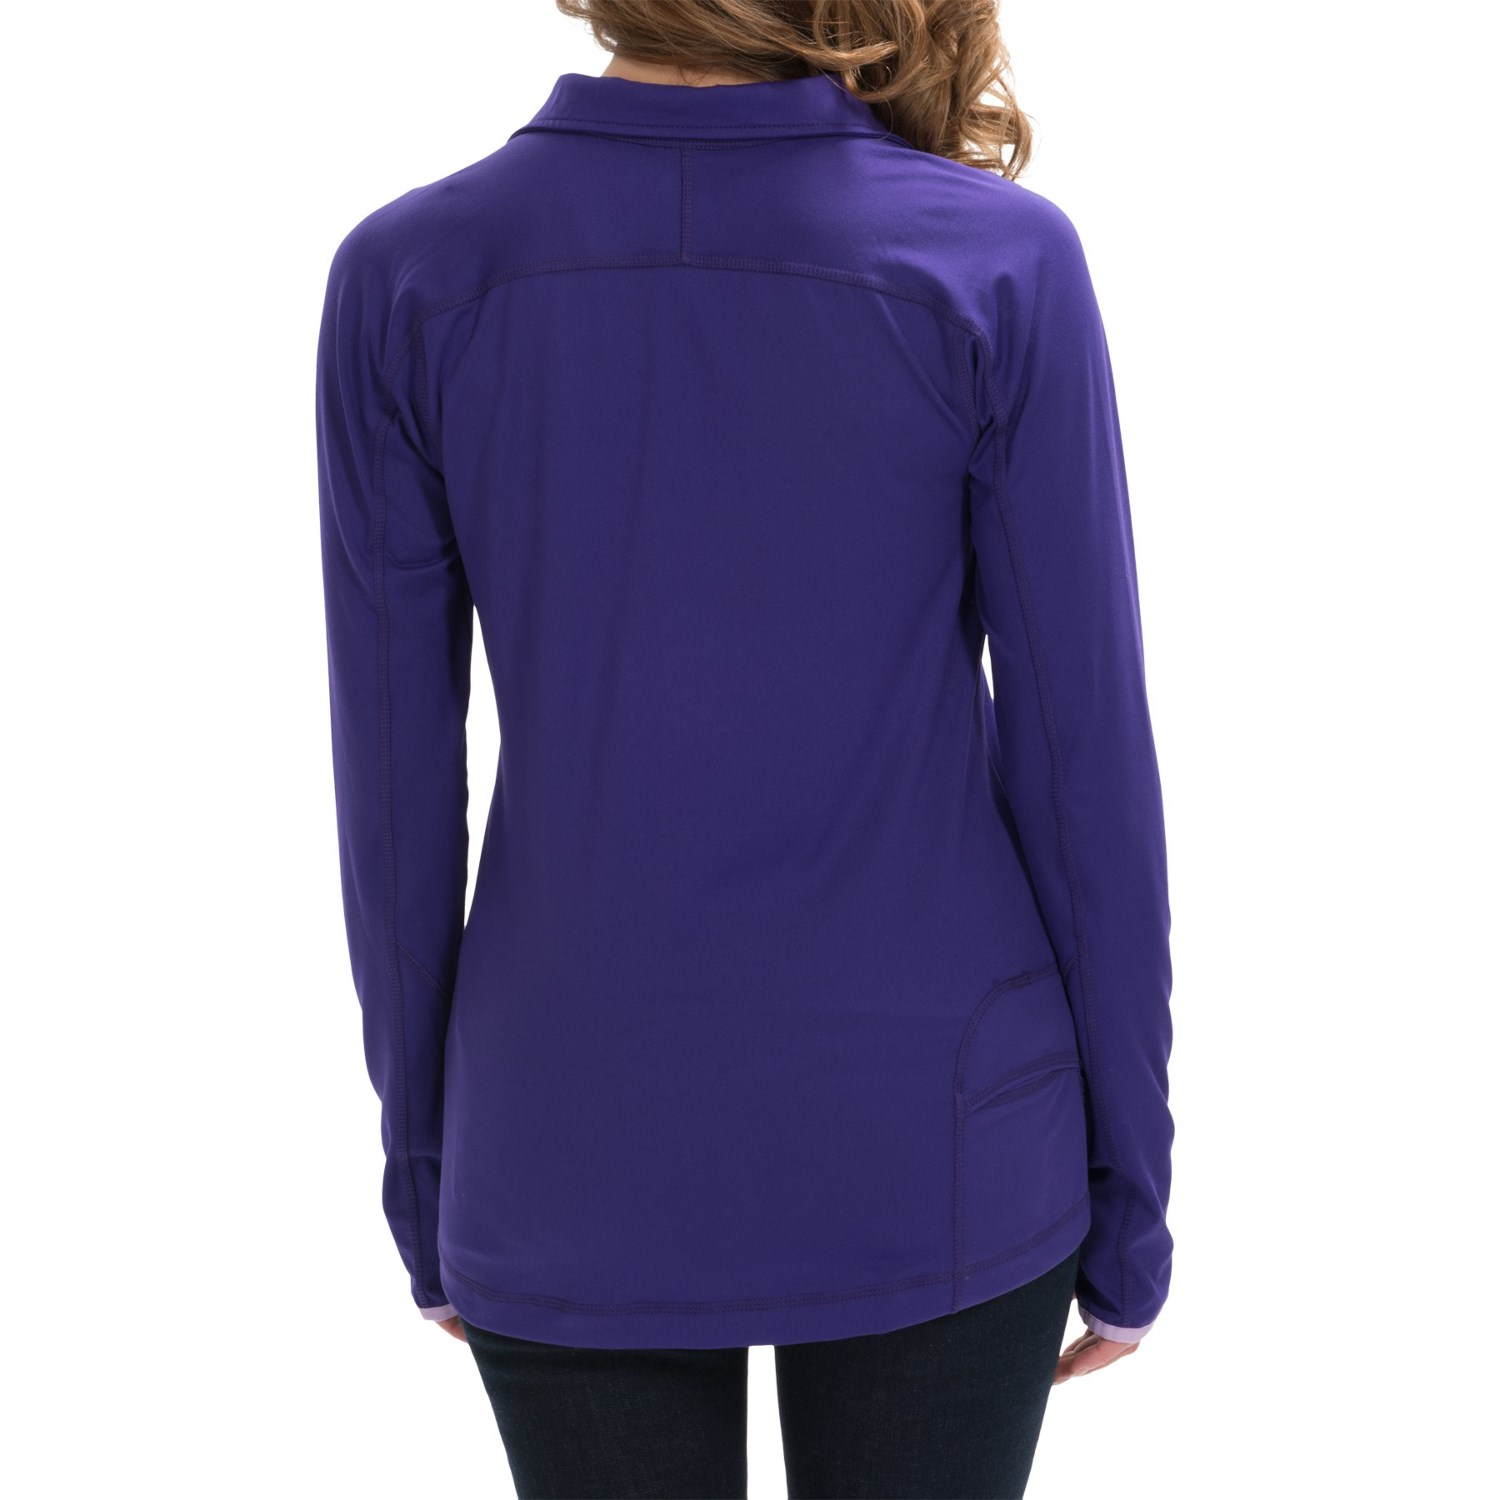 Active Pullover Shirt For Women 117gy Save 81